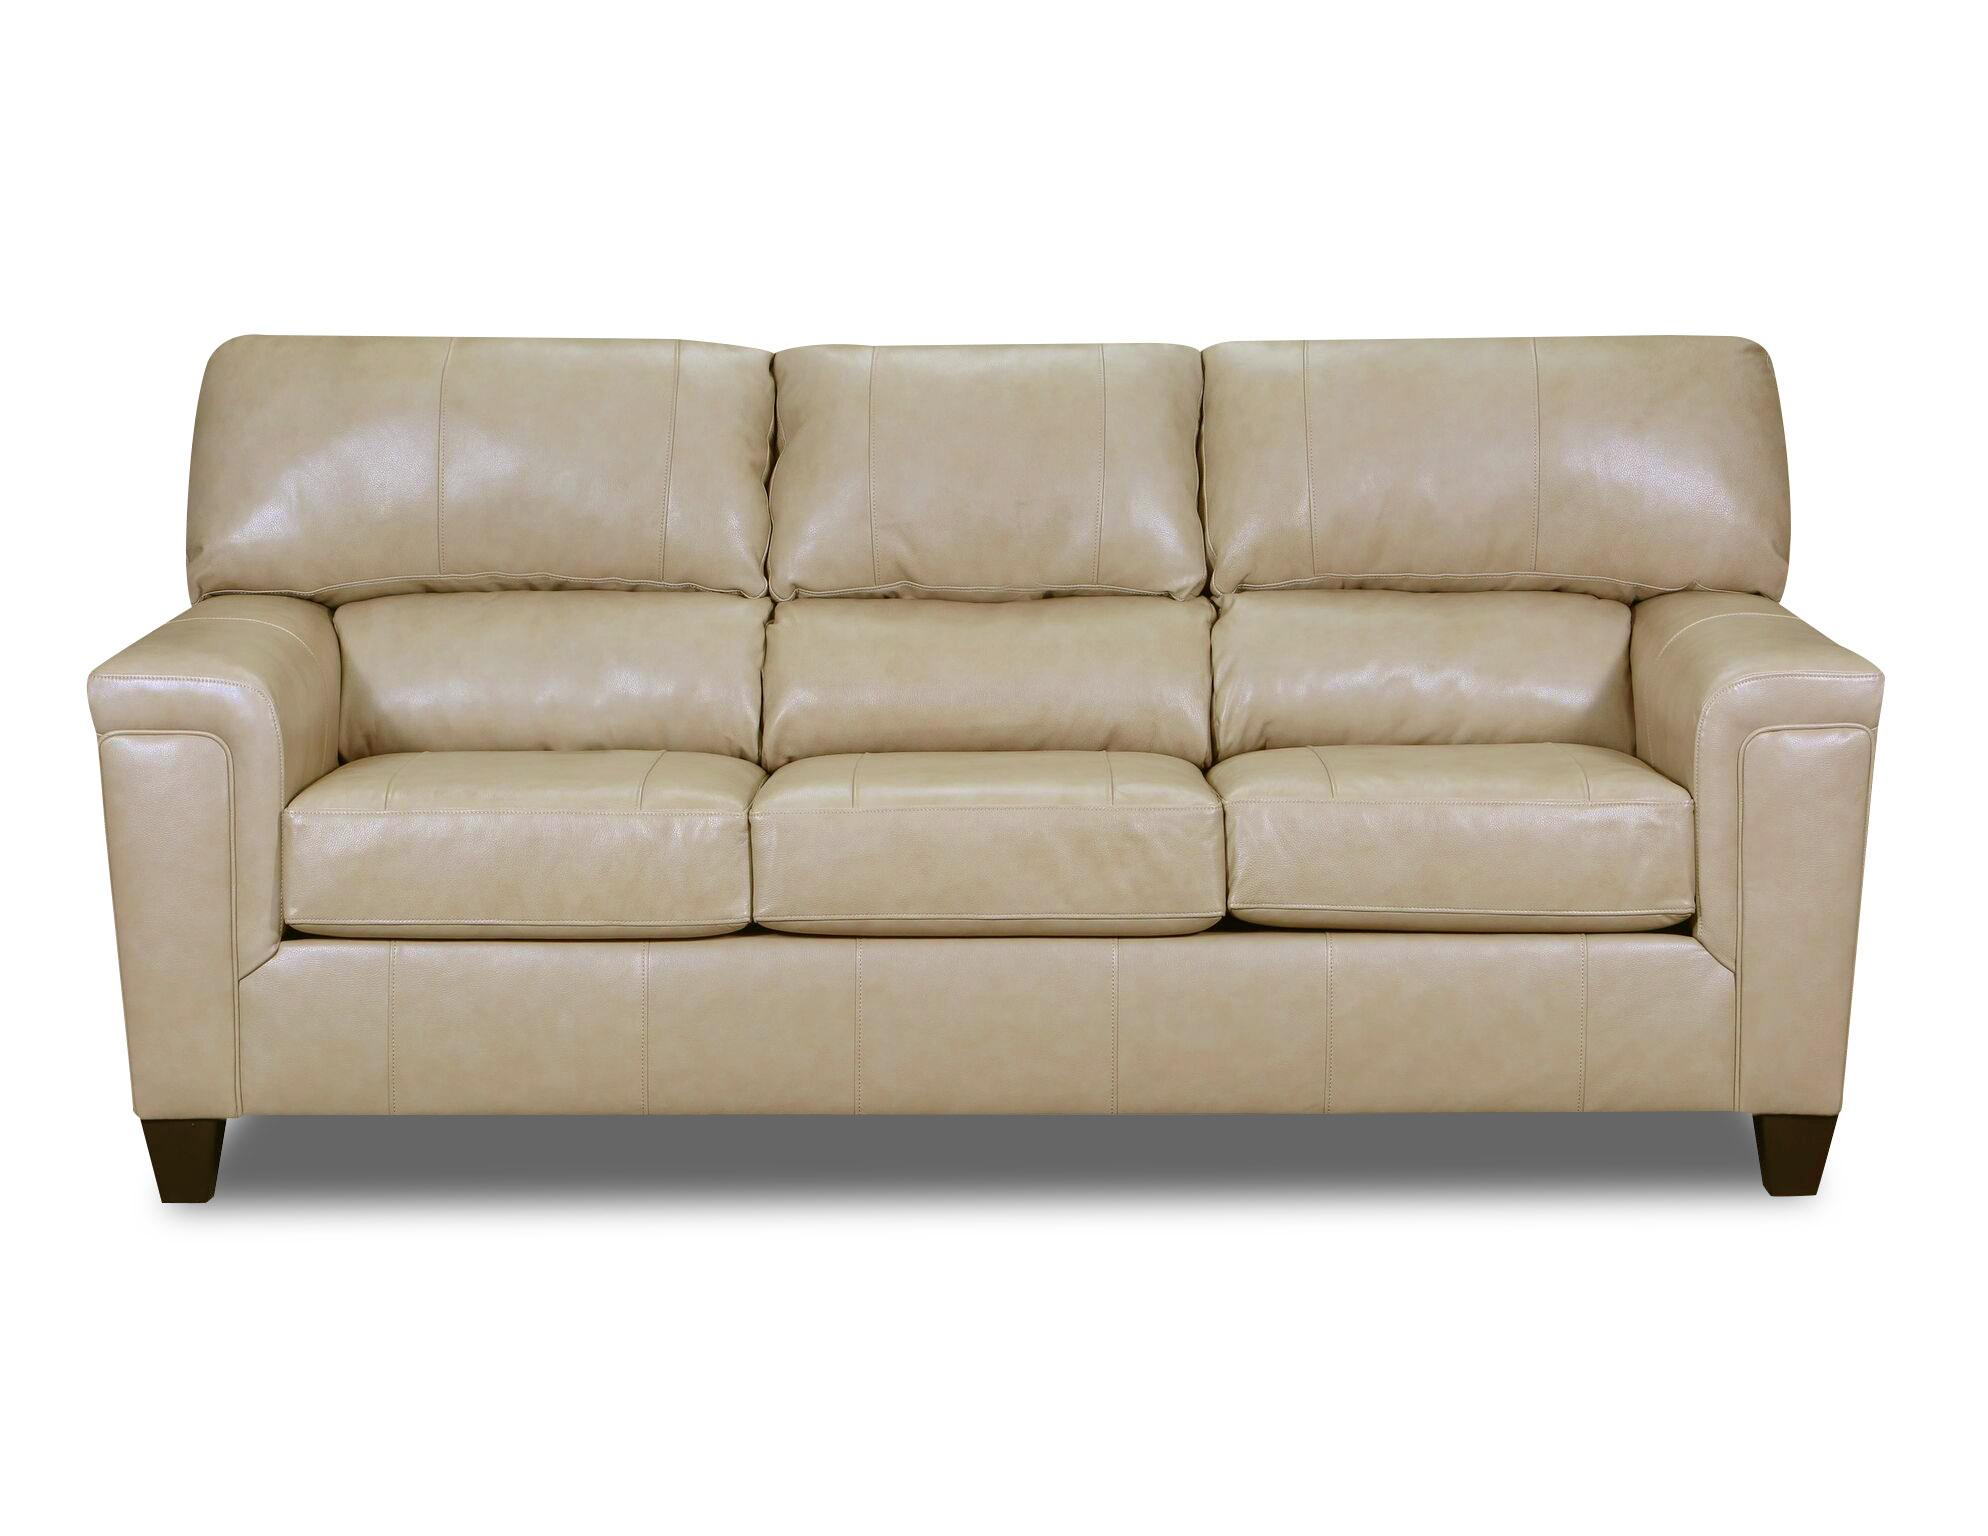 Magnificent Lane Furniture Soft Touch Putty Leather Sofa Beutiful Home Inspiration Truamahrainfo